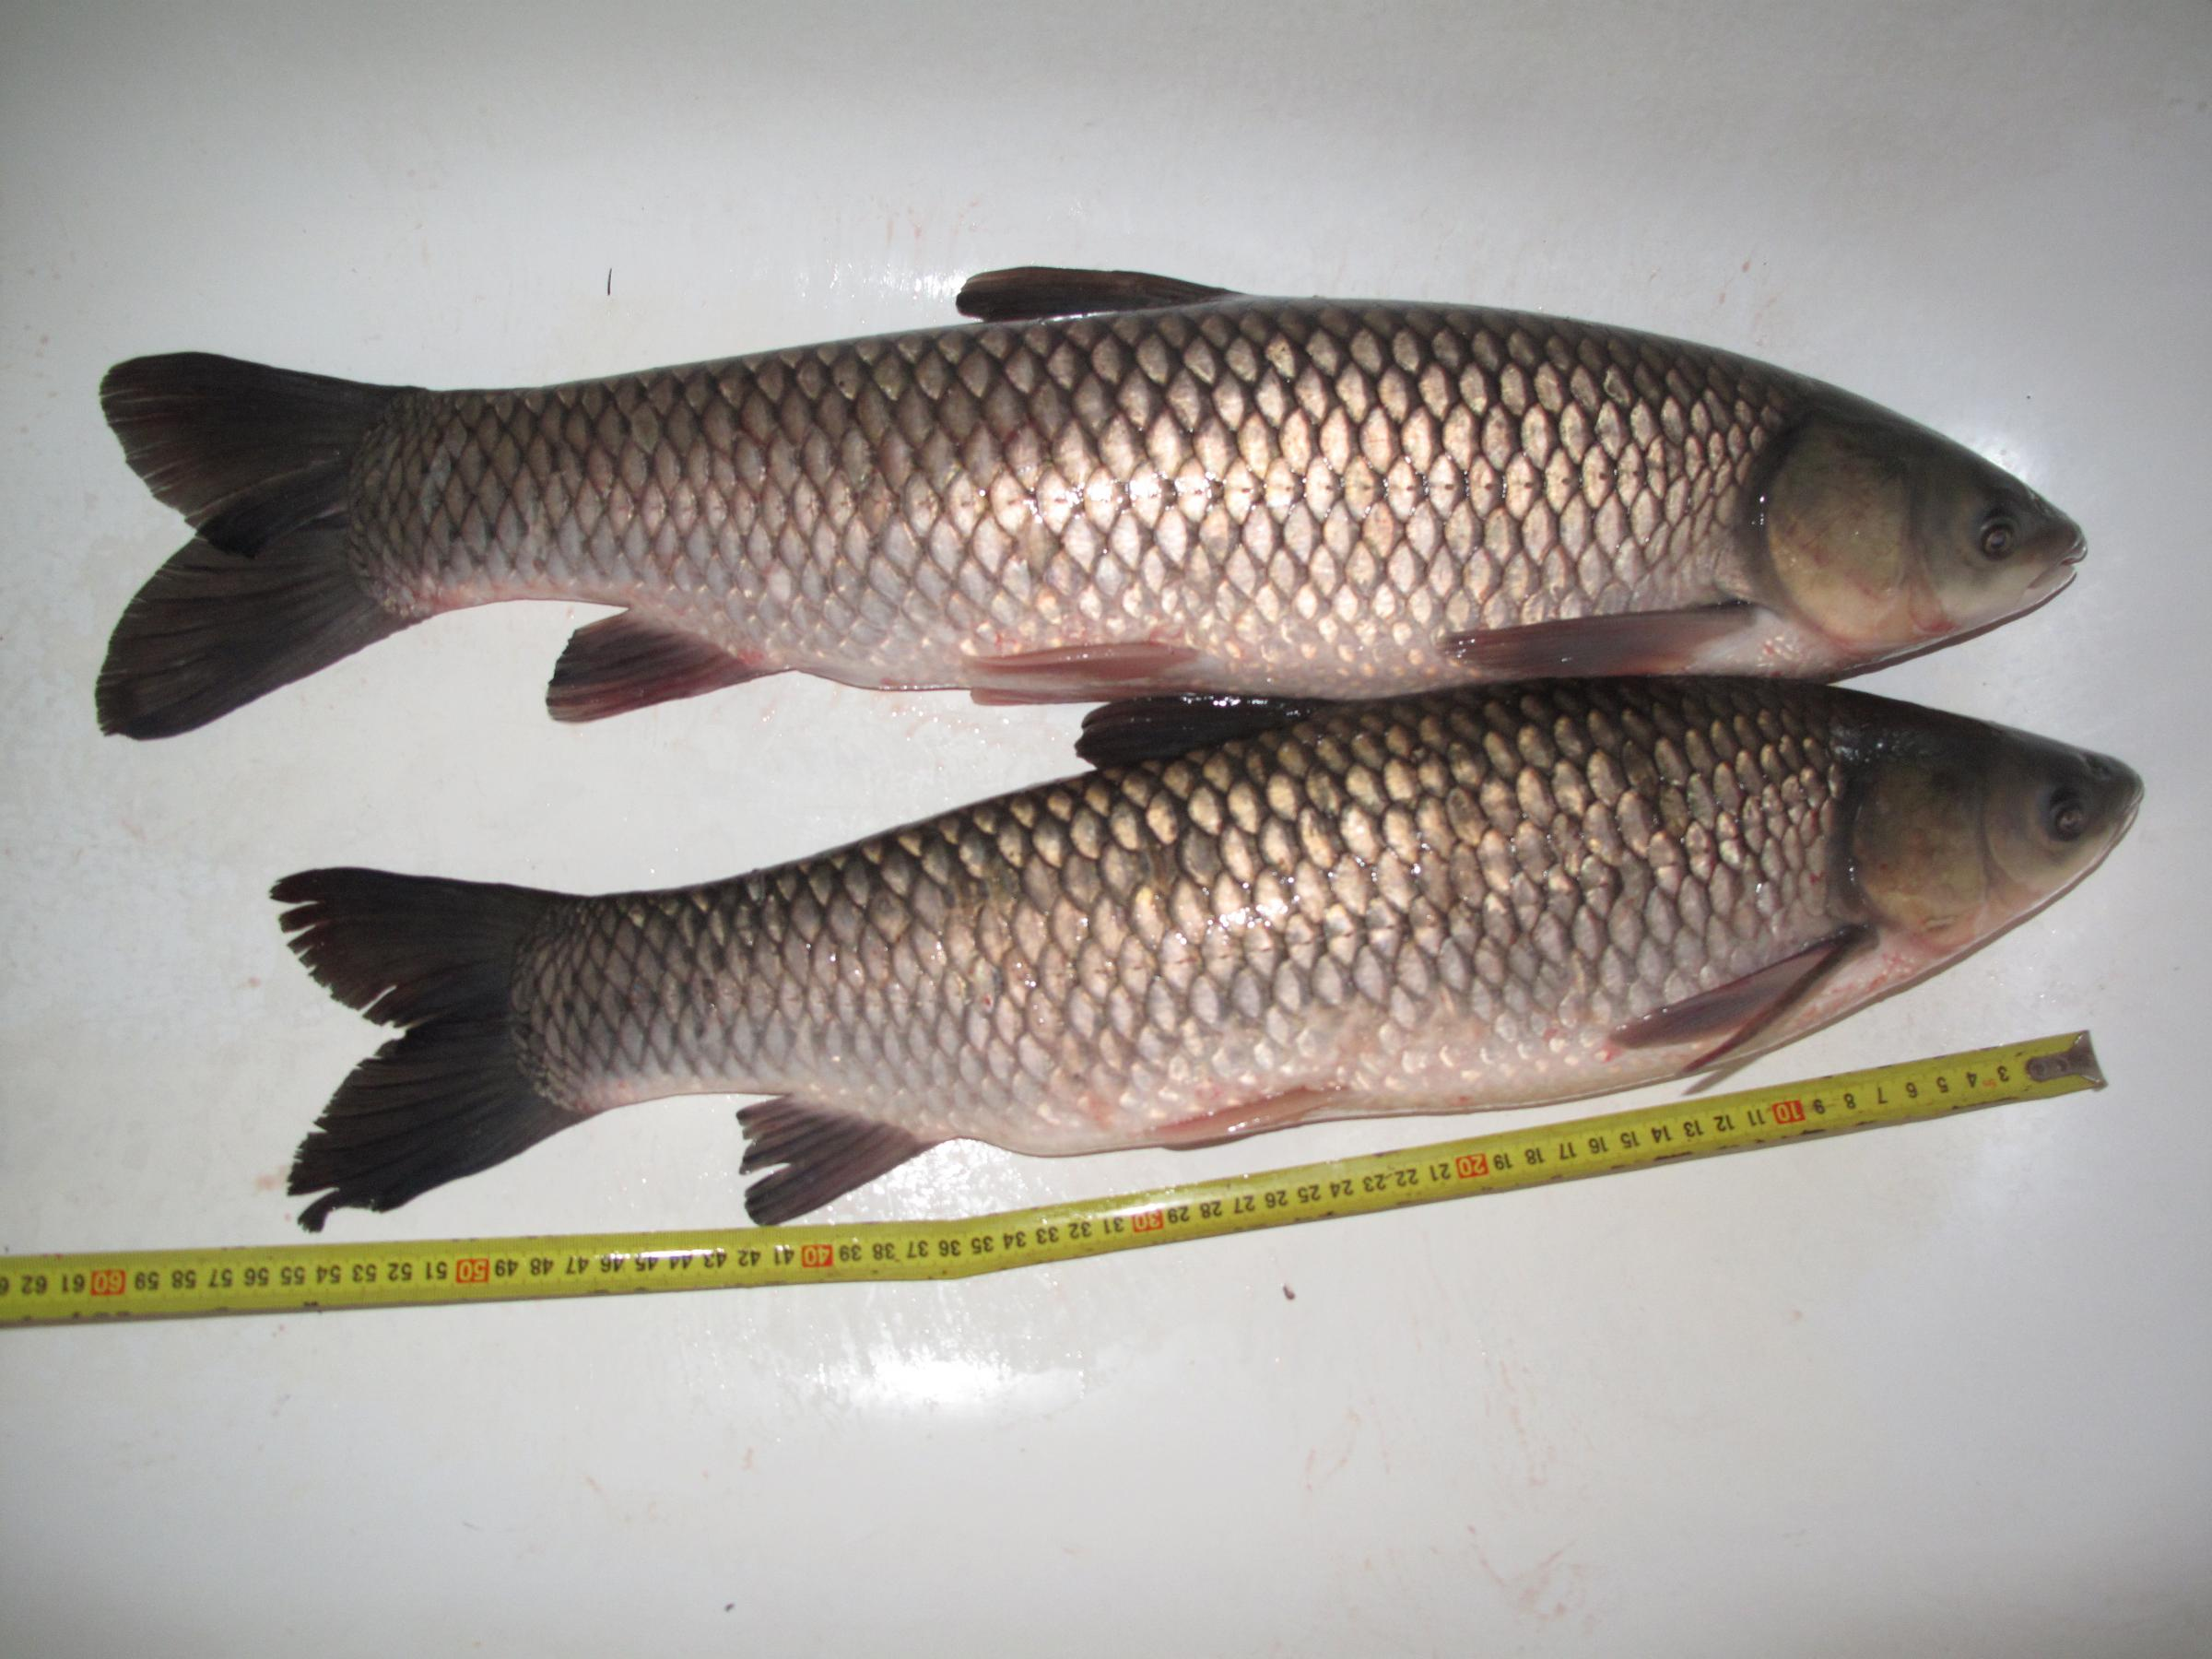 Dnr to search lake after illegal carp report michigan radio for Grass carp fish